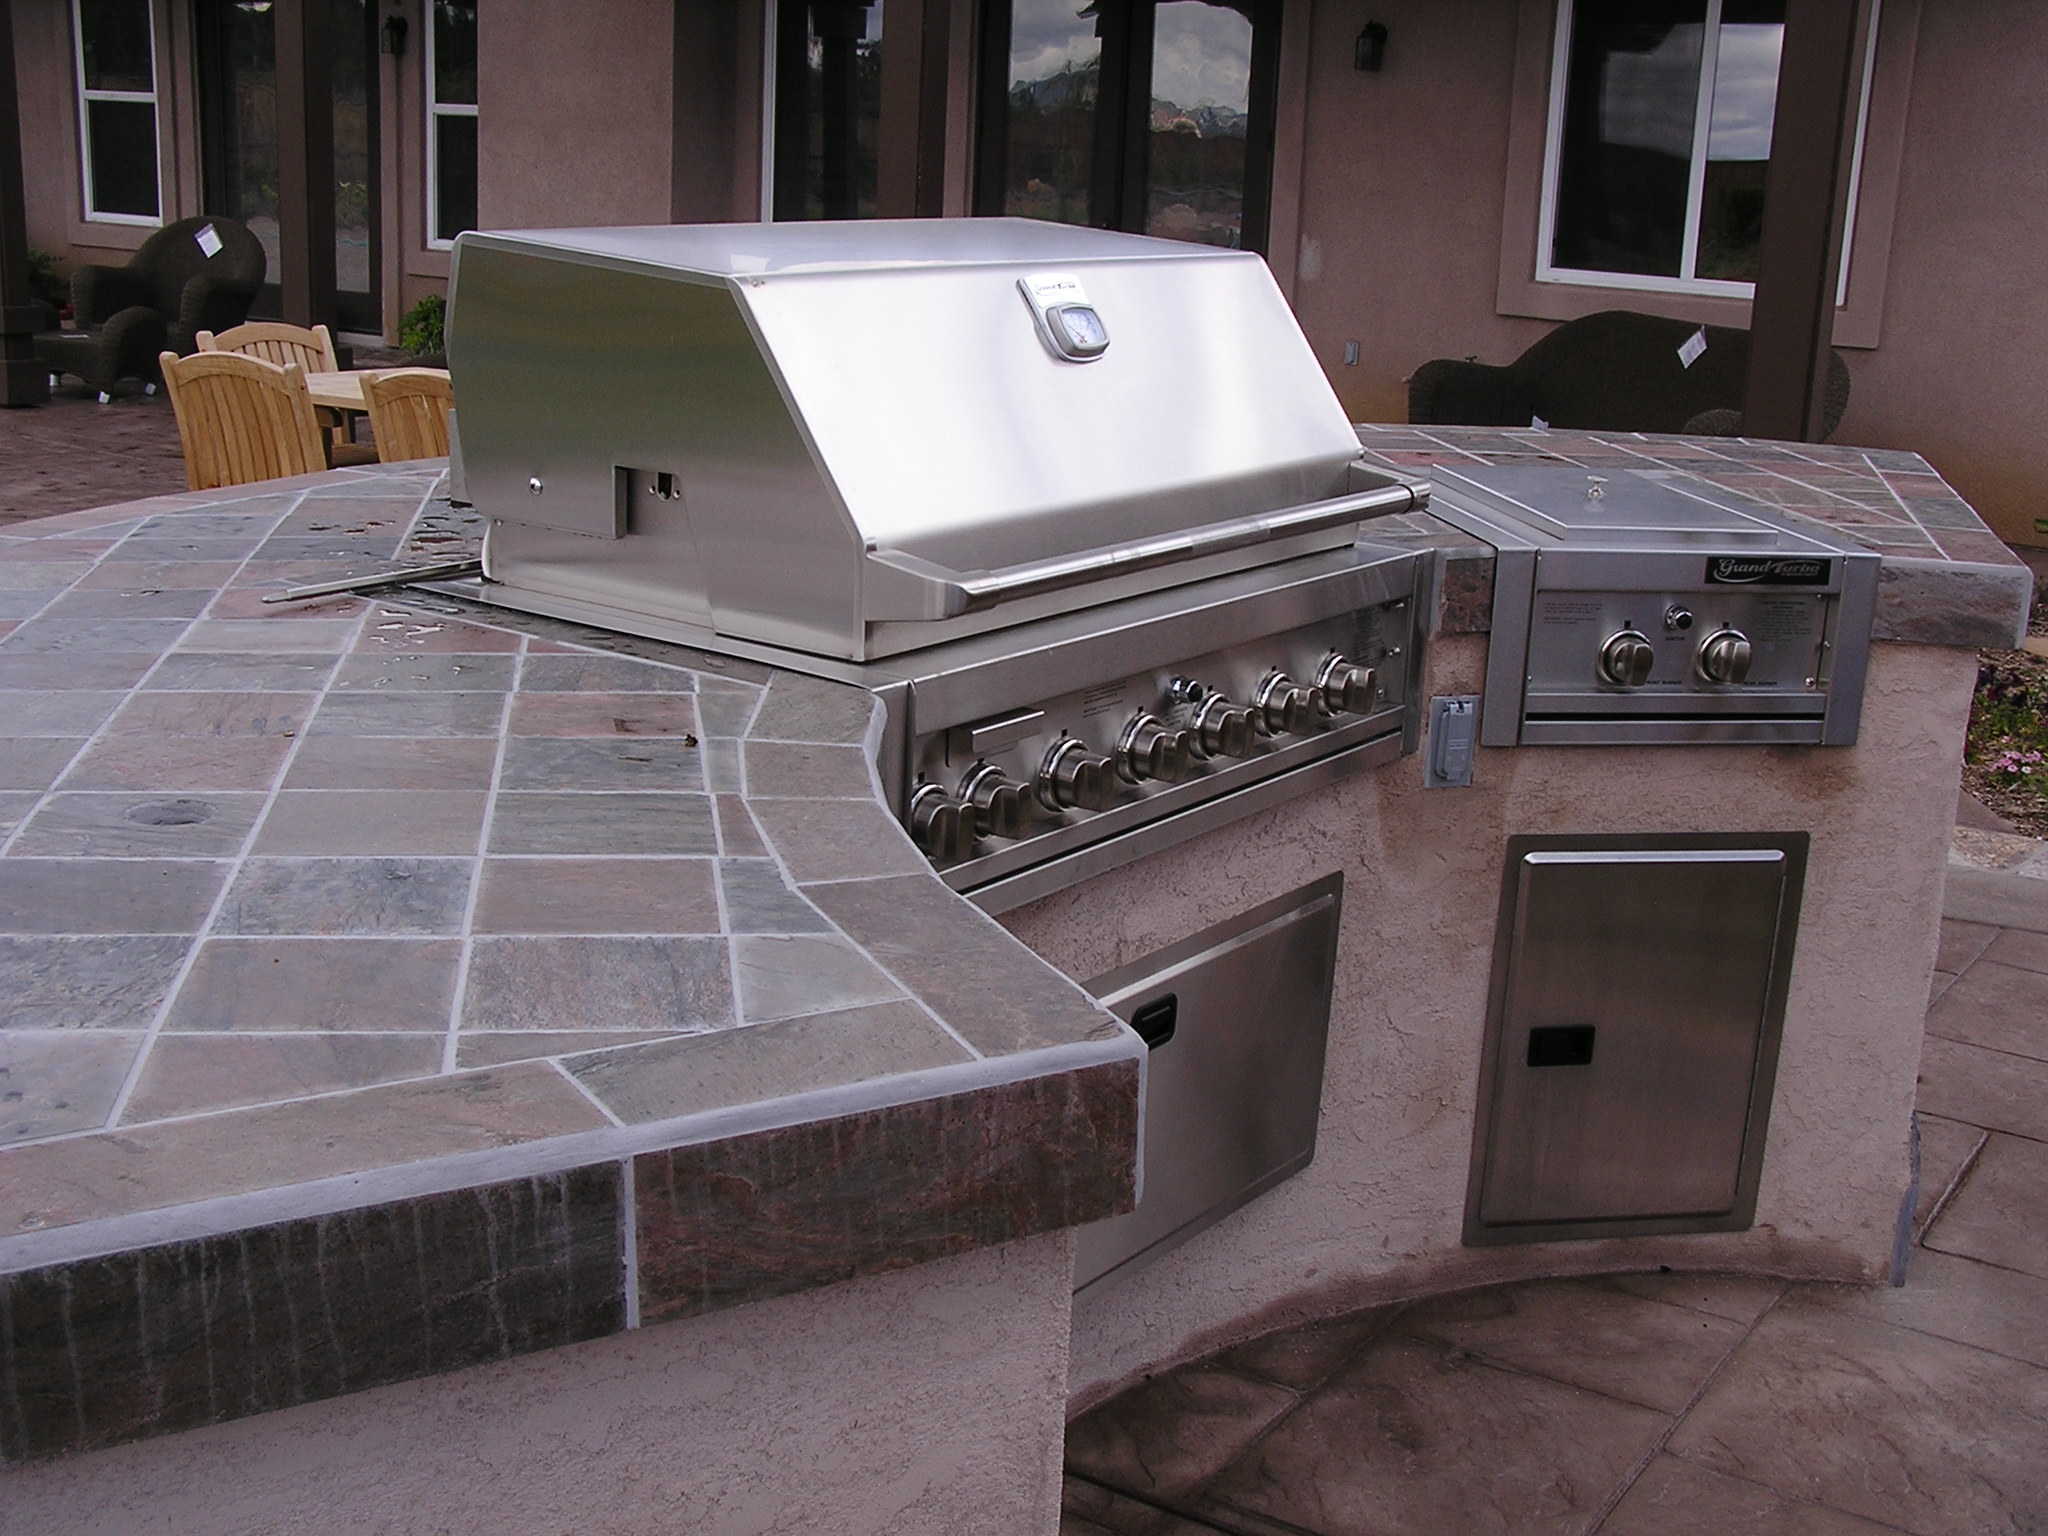 Outdoor Kitchens San Diego Add A Bbq Island To Enhance Your Backyard Gatherings